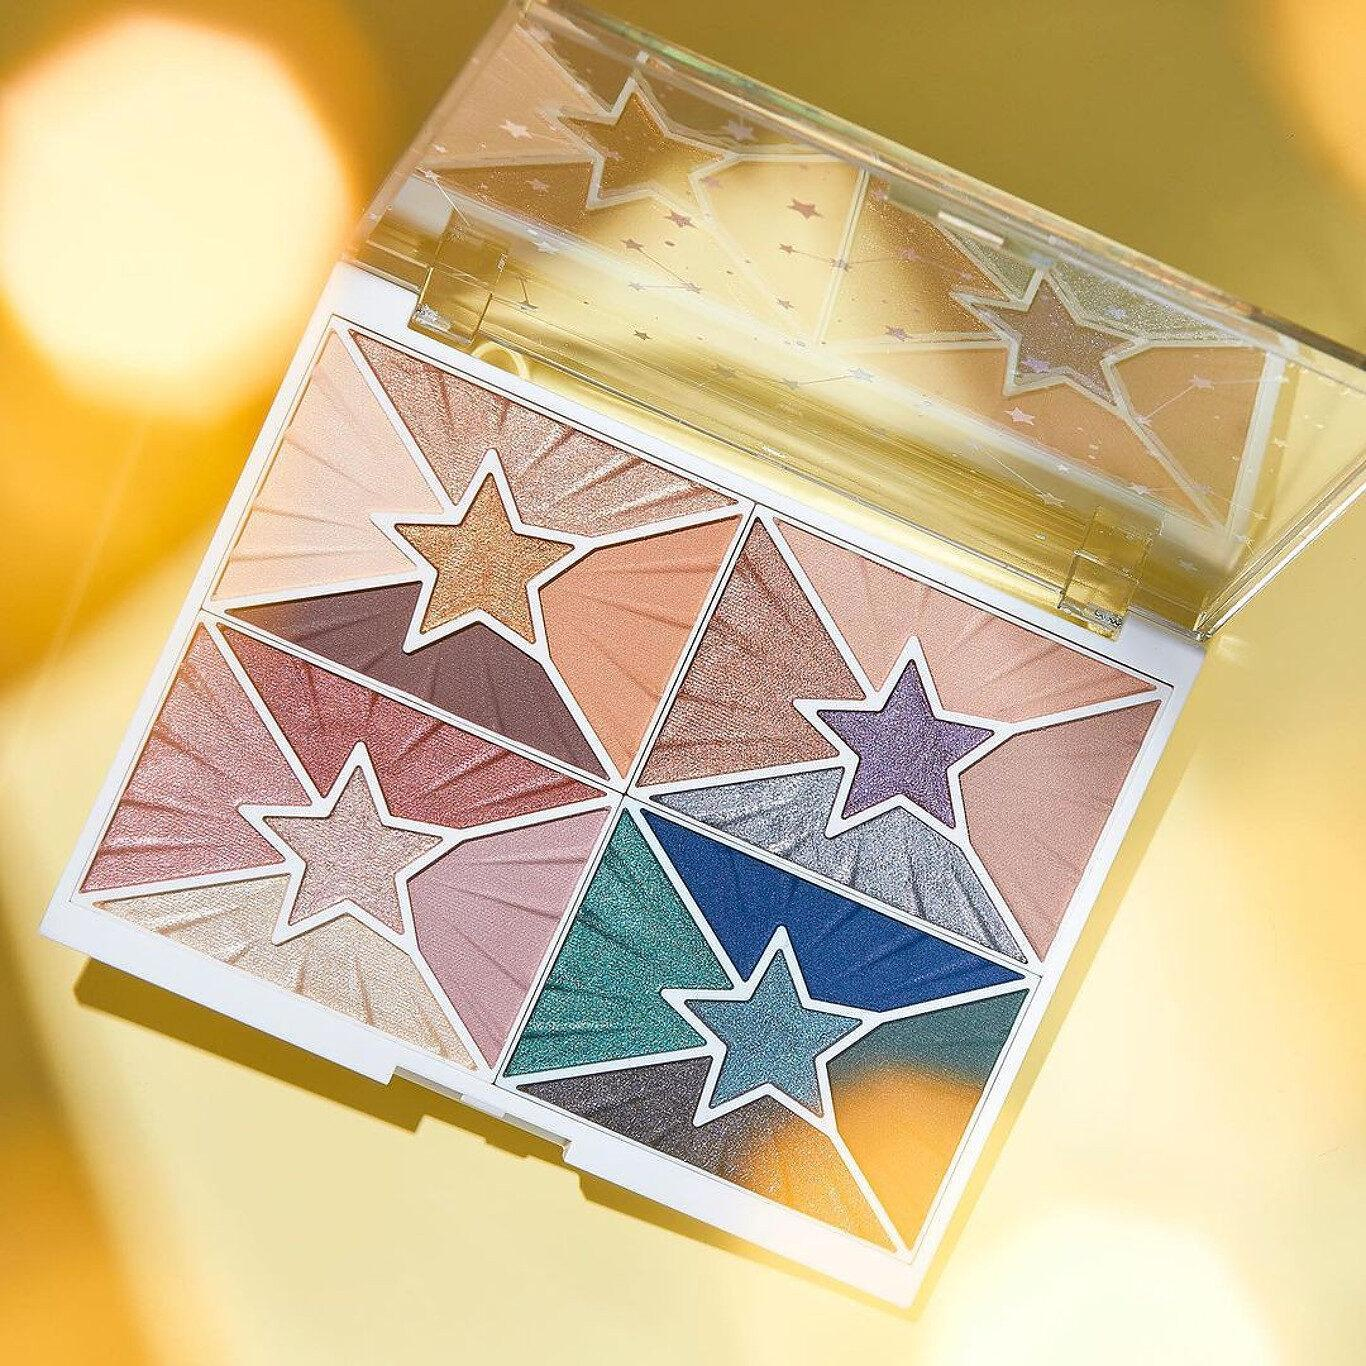 Star Chasers Eyeshadow Palette Promo